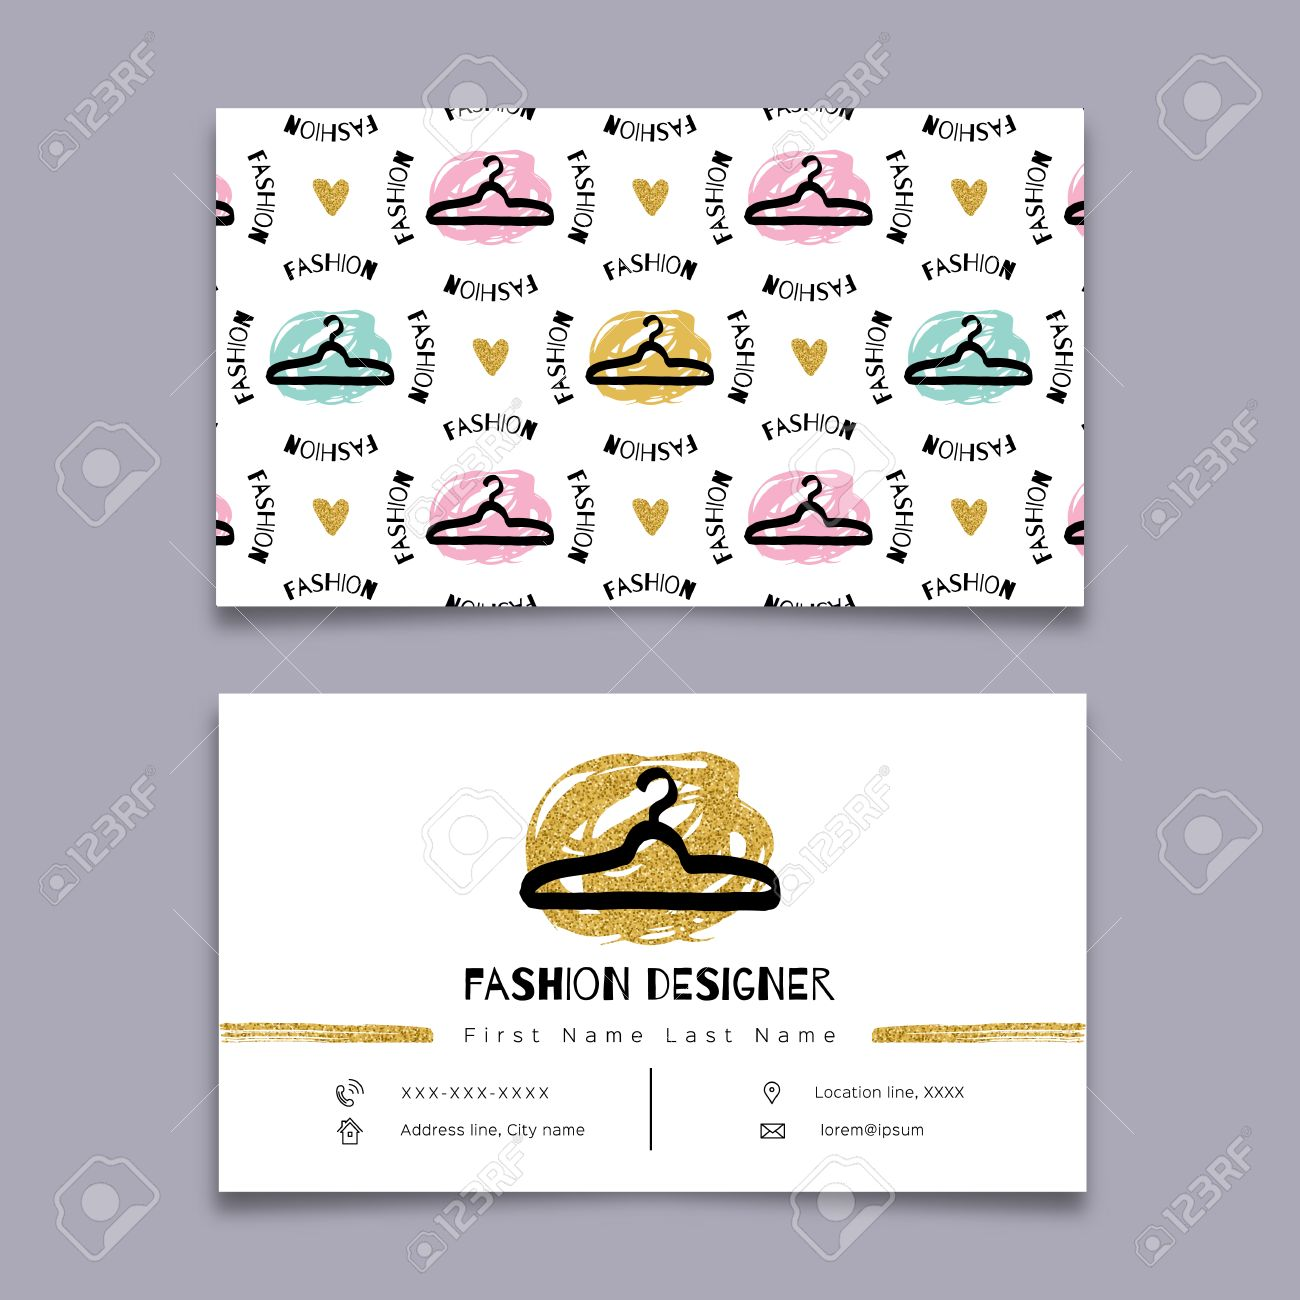 Fashion Designer Business Card Stylist Modern Hipster Minimal Royalty Free Cliparts Vectors And Stock Illustration Image 67382799